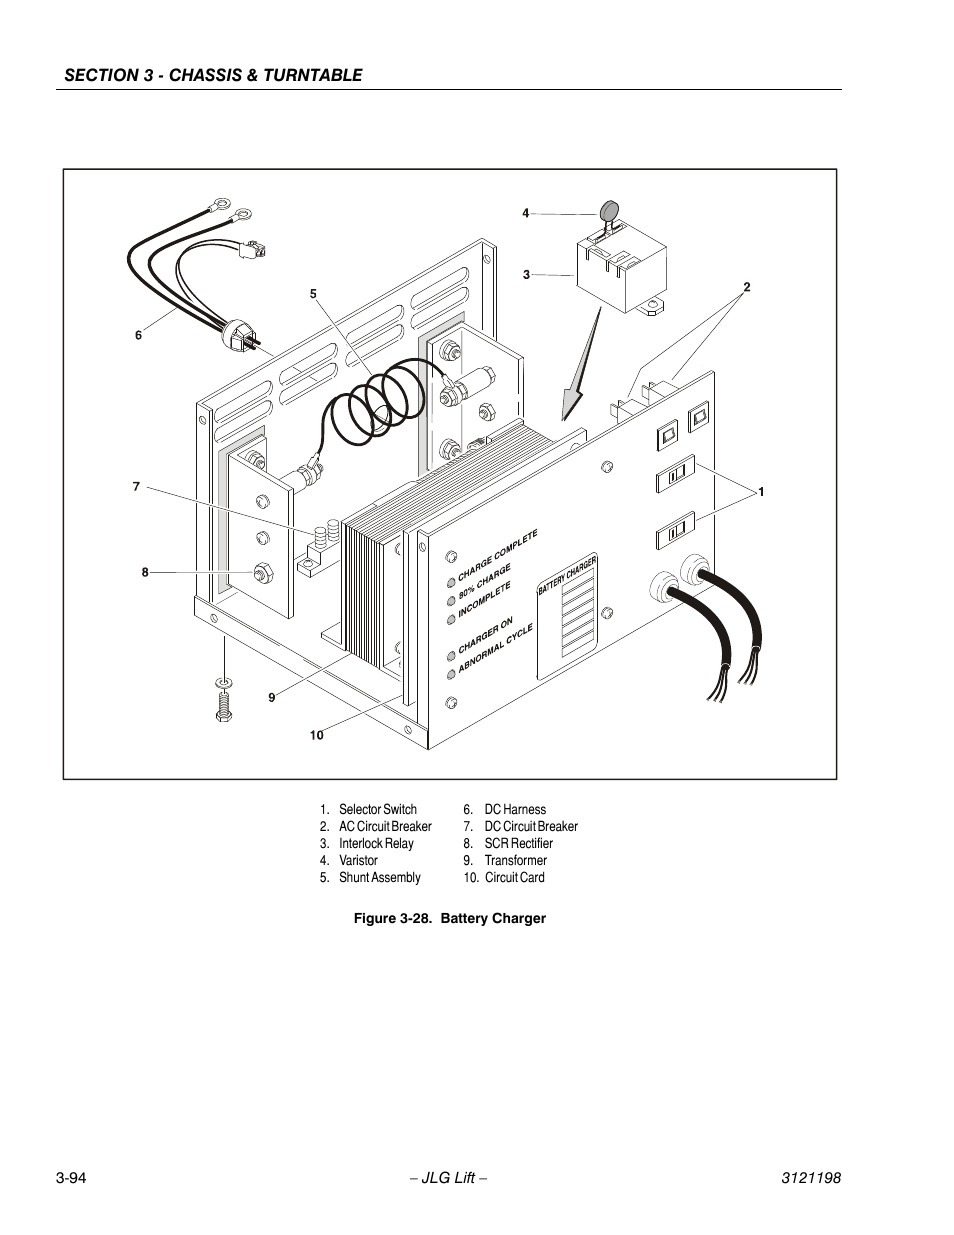 Jlg Battery Charger Wiring Schematic | Wiring Schematic ... on toyota wiring schematics, hino wiring schematics, ingersoll rand wiring schematics, cushman wiring schematics, john deere wiring schematics, kubota wiring schematics, ford wiring schematics, hyster wiring schematics, komatsu wiring schematics, toro wiring schematics, husqvarna wiring schematics, yamaha wiring schematics, sullair wiring schematics, chevrolet wiring schematics, mack wiring schematics, honda wiring schematics, pierce wiring schematics, international wiring schematics, mazda wiring schematics, mitsubishi wiring schematics,